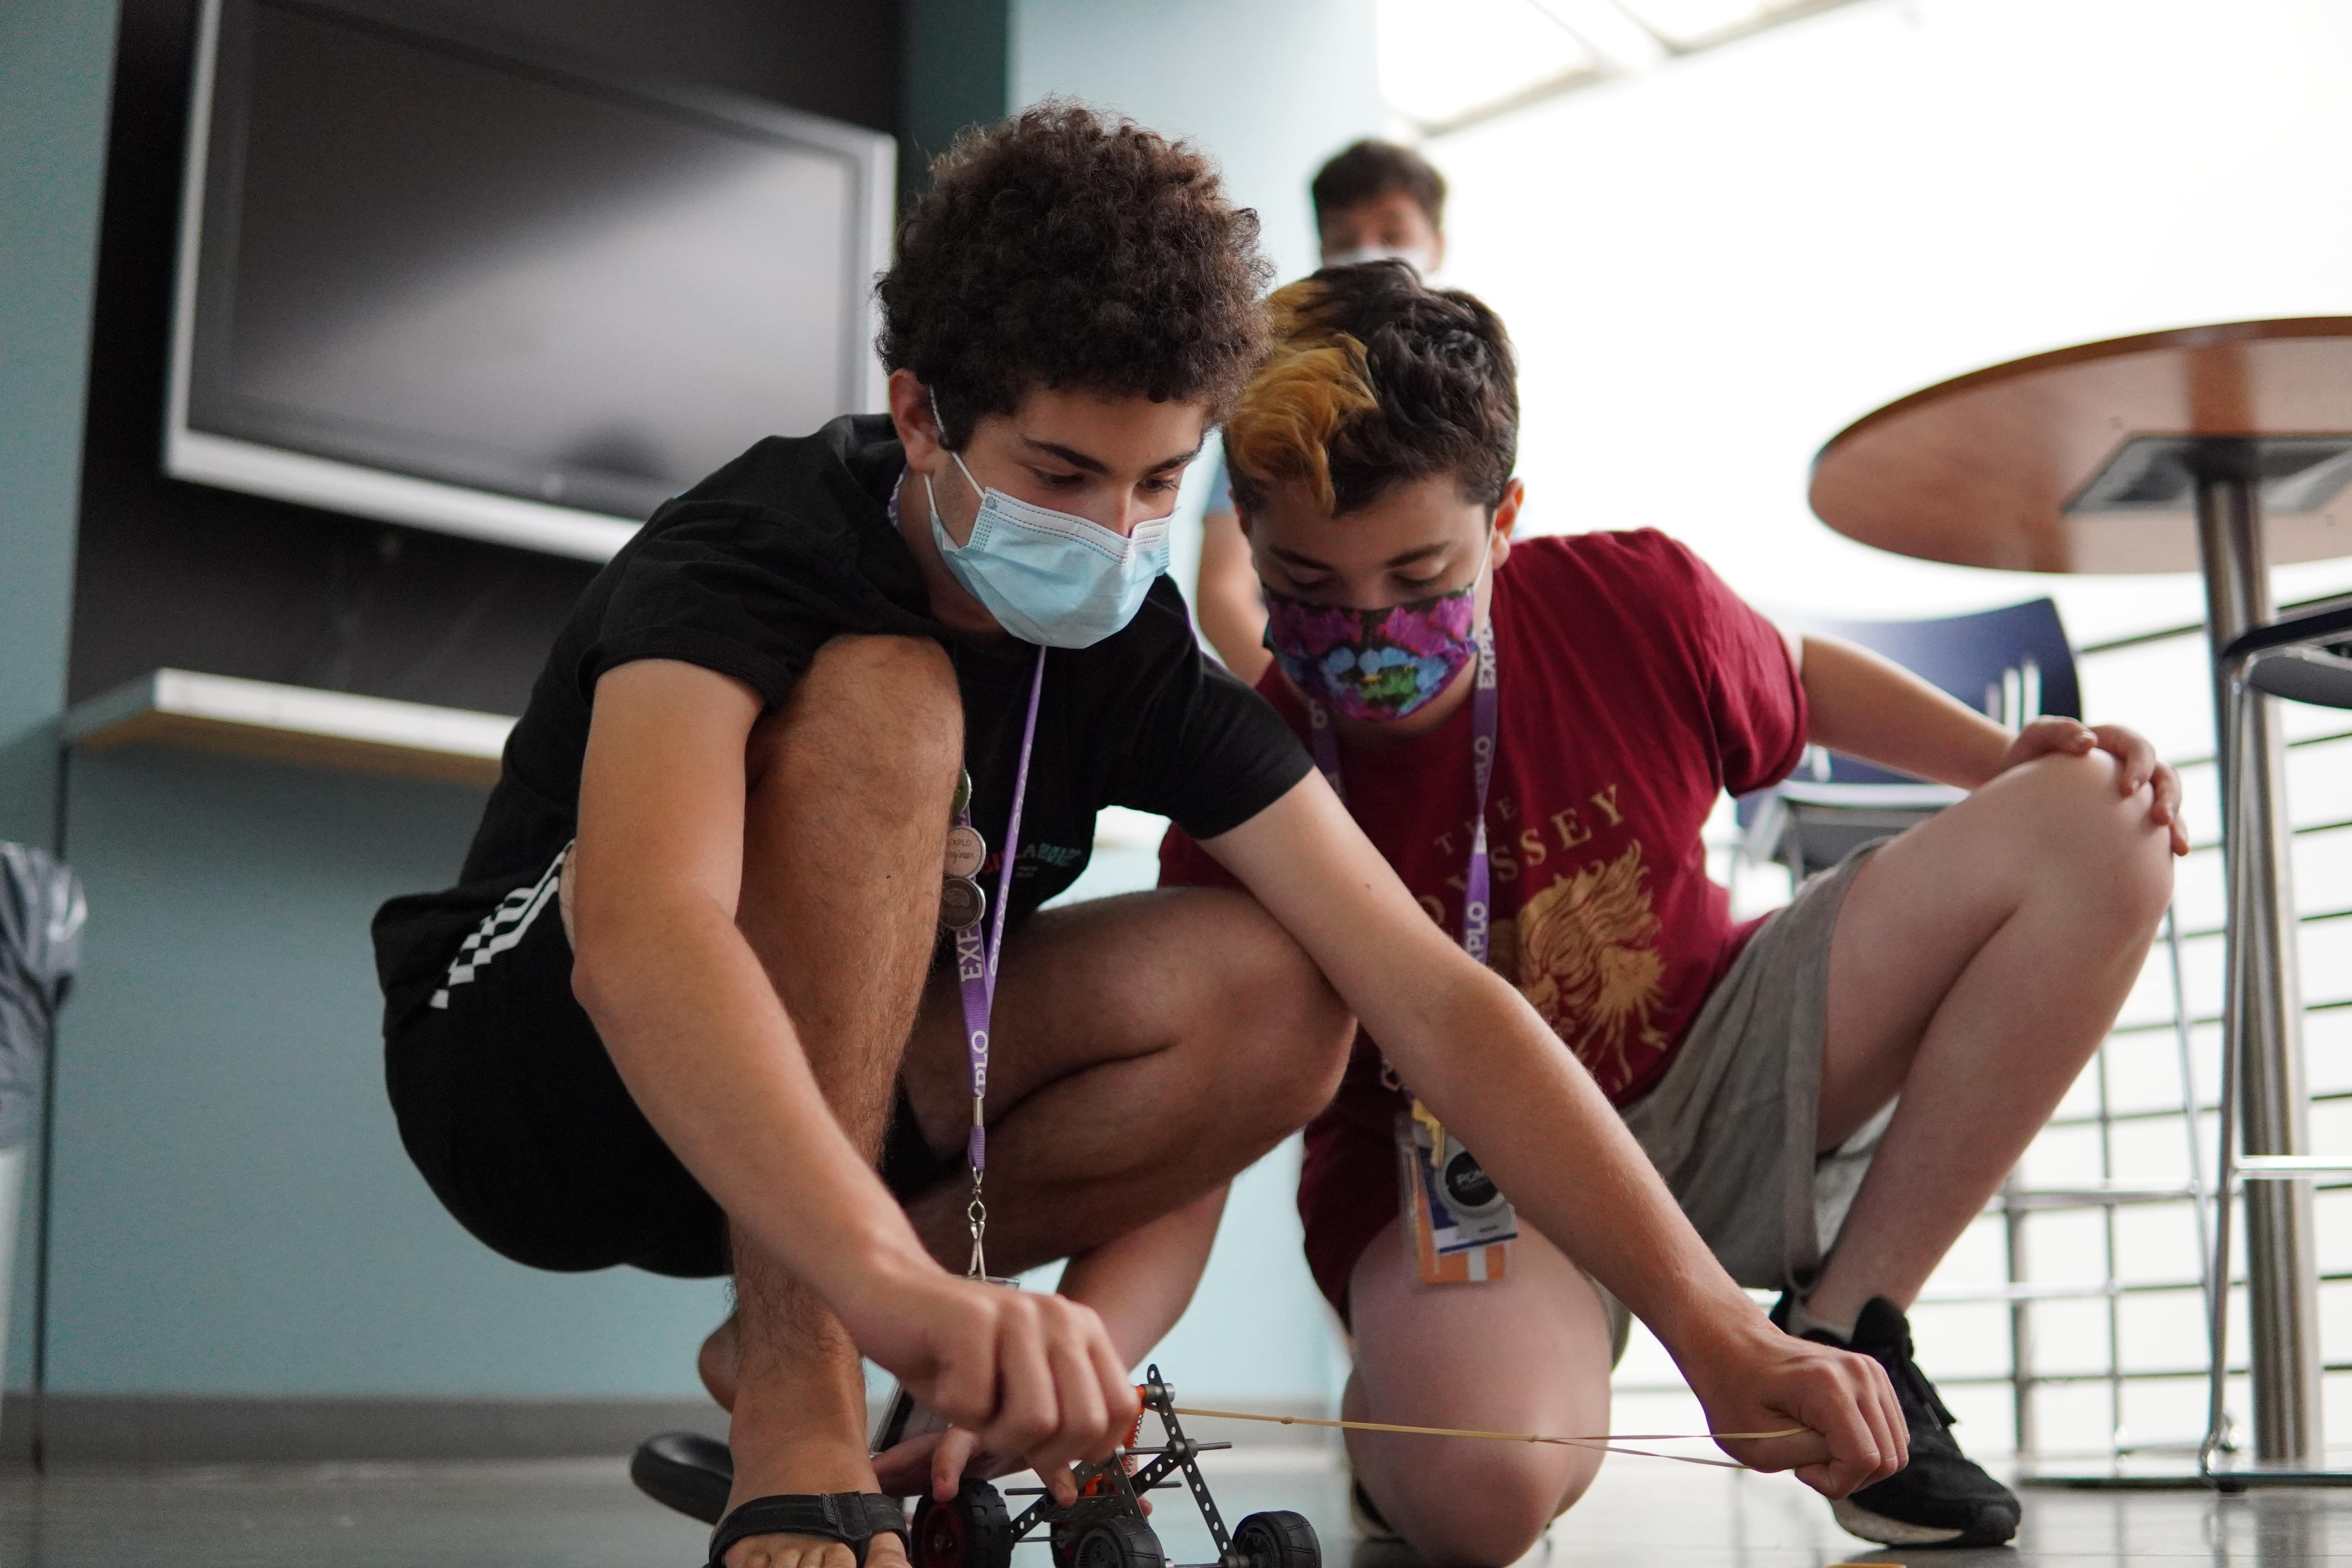 Two students kneel next to the ground to launch an RC car across the floor with a rubber band.